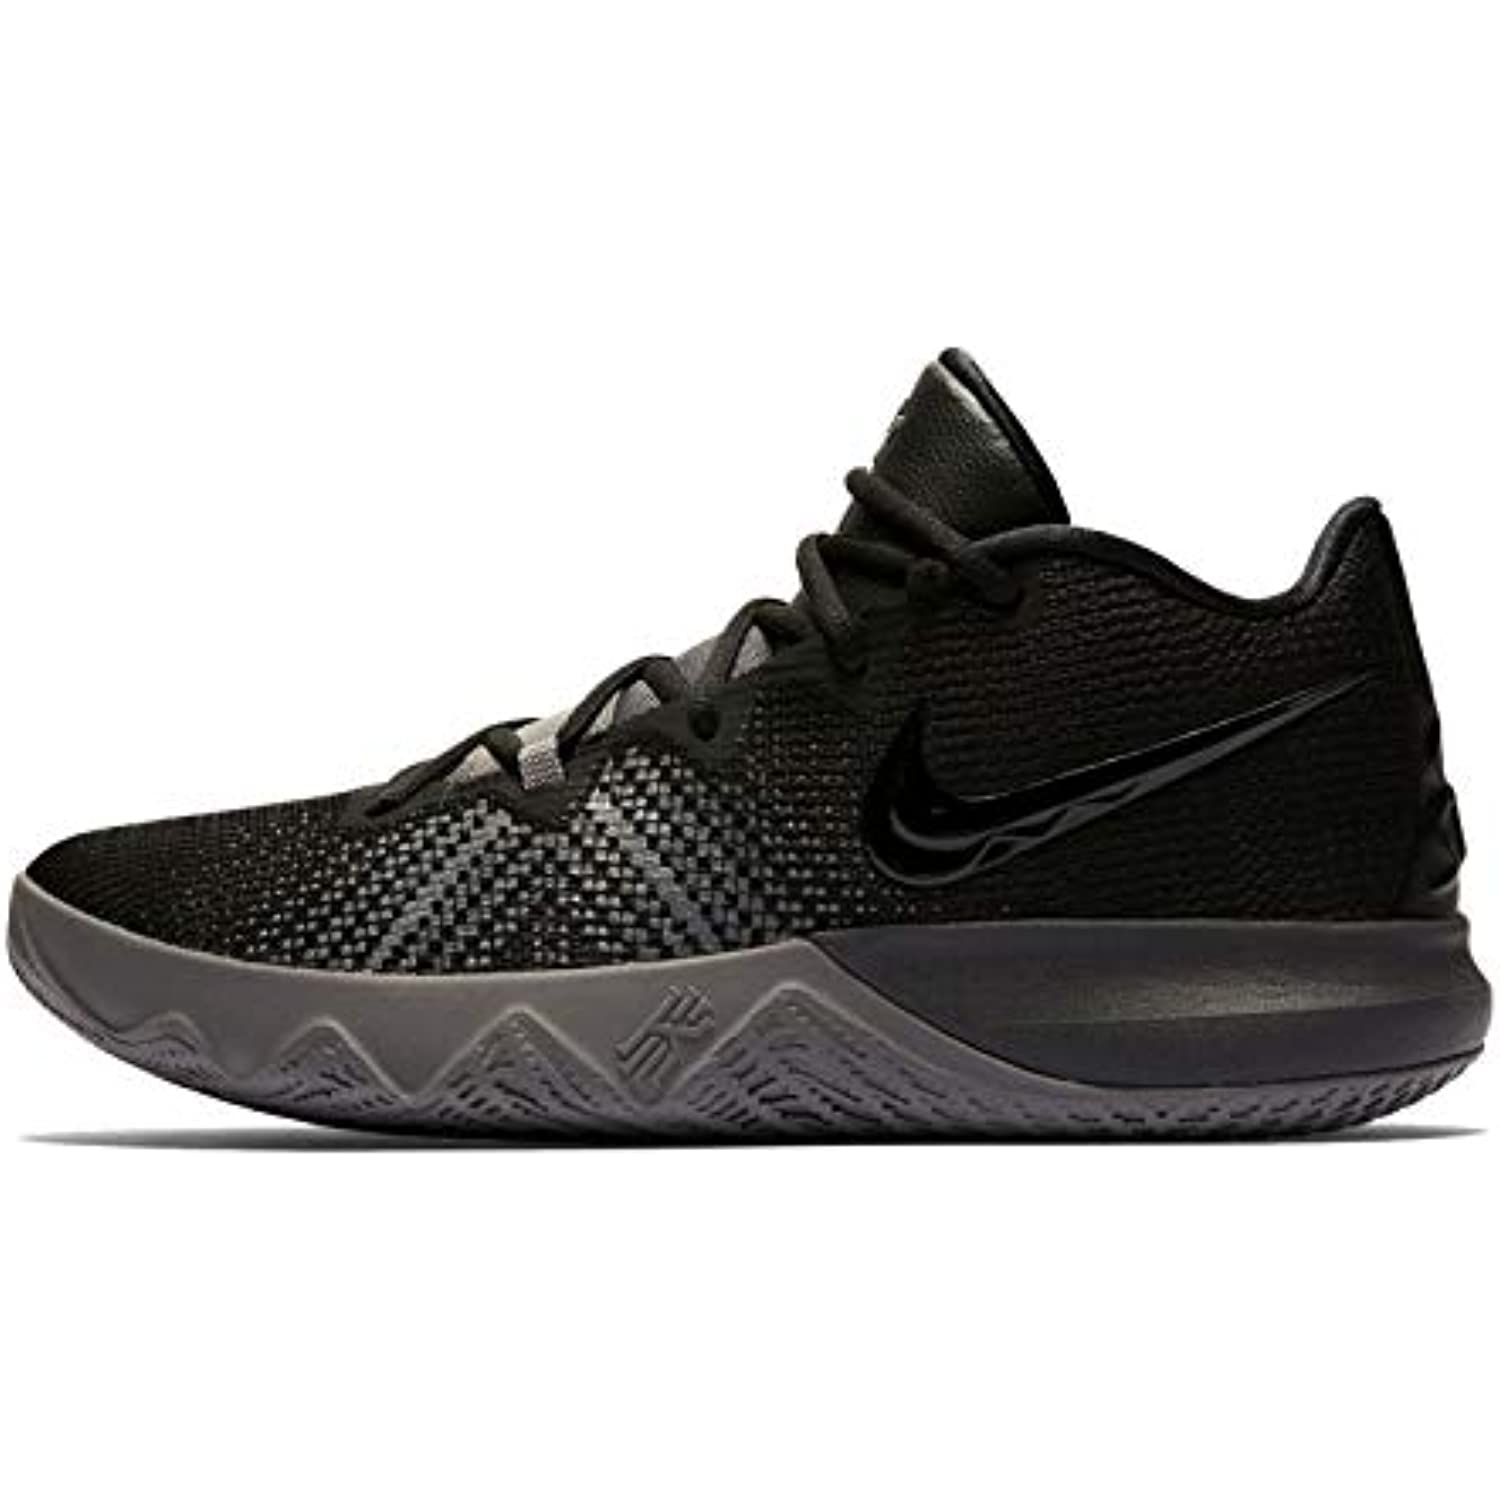 san francisco 0a9ee 41544 NIKE Kyrie Flytrap, Chaussures de Fitness Homme Homme Homme B078NSPNBS -  f14eff